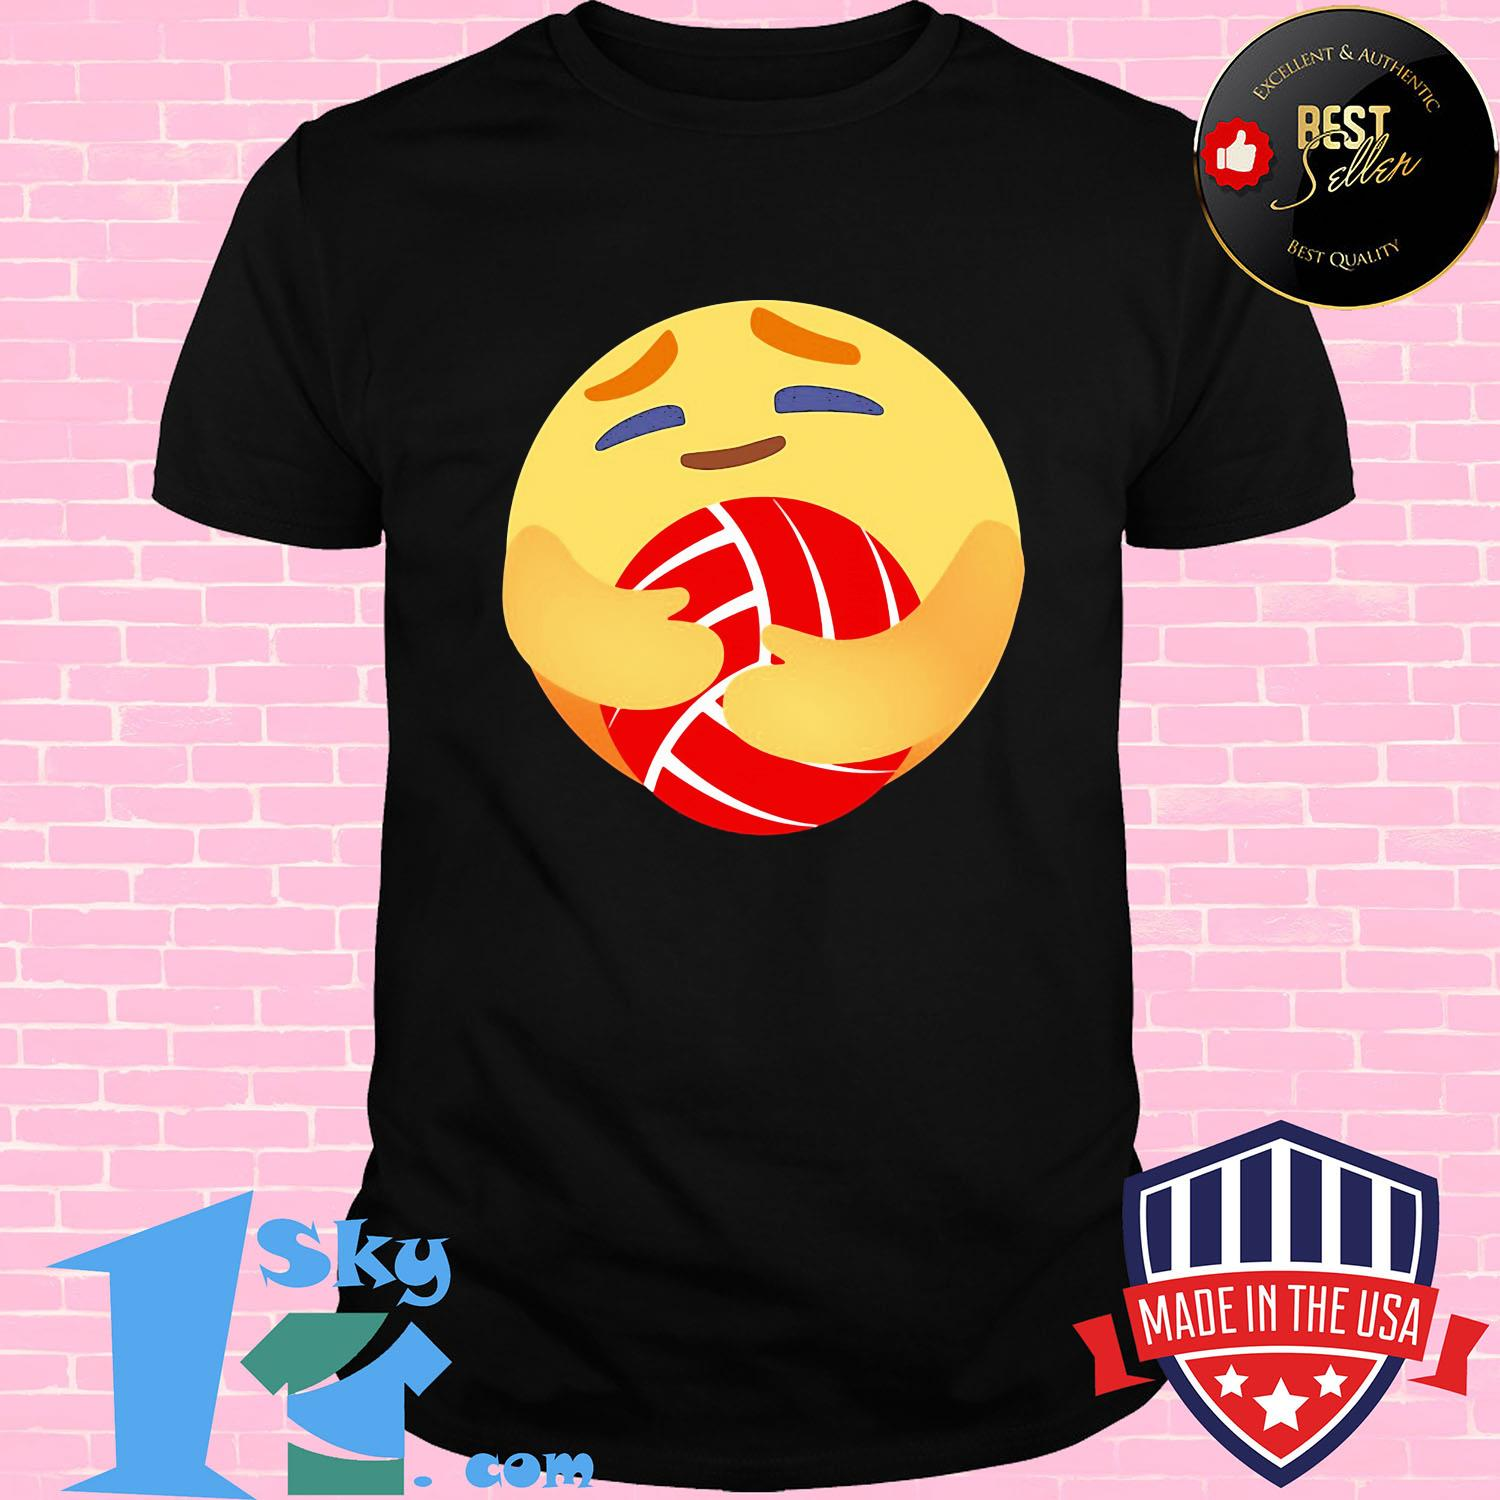 a34f71dd icon hug care volleyball shirt unisex shirt - Shop trending - We offer all trend shirts - 1SkyTee